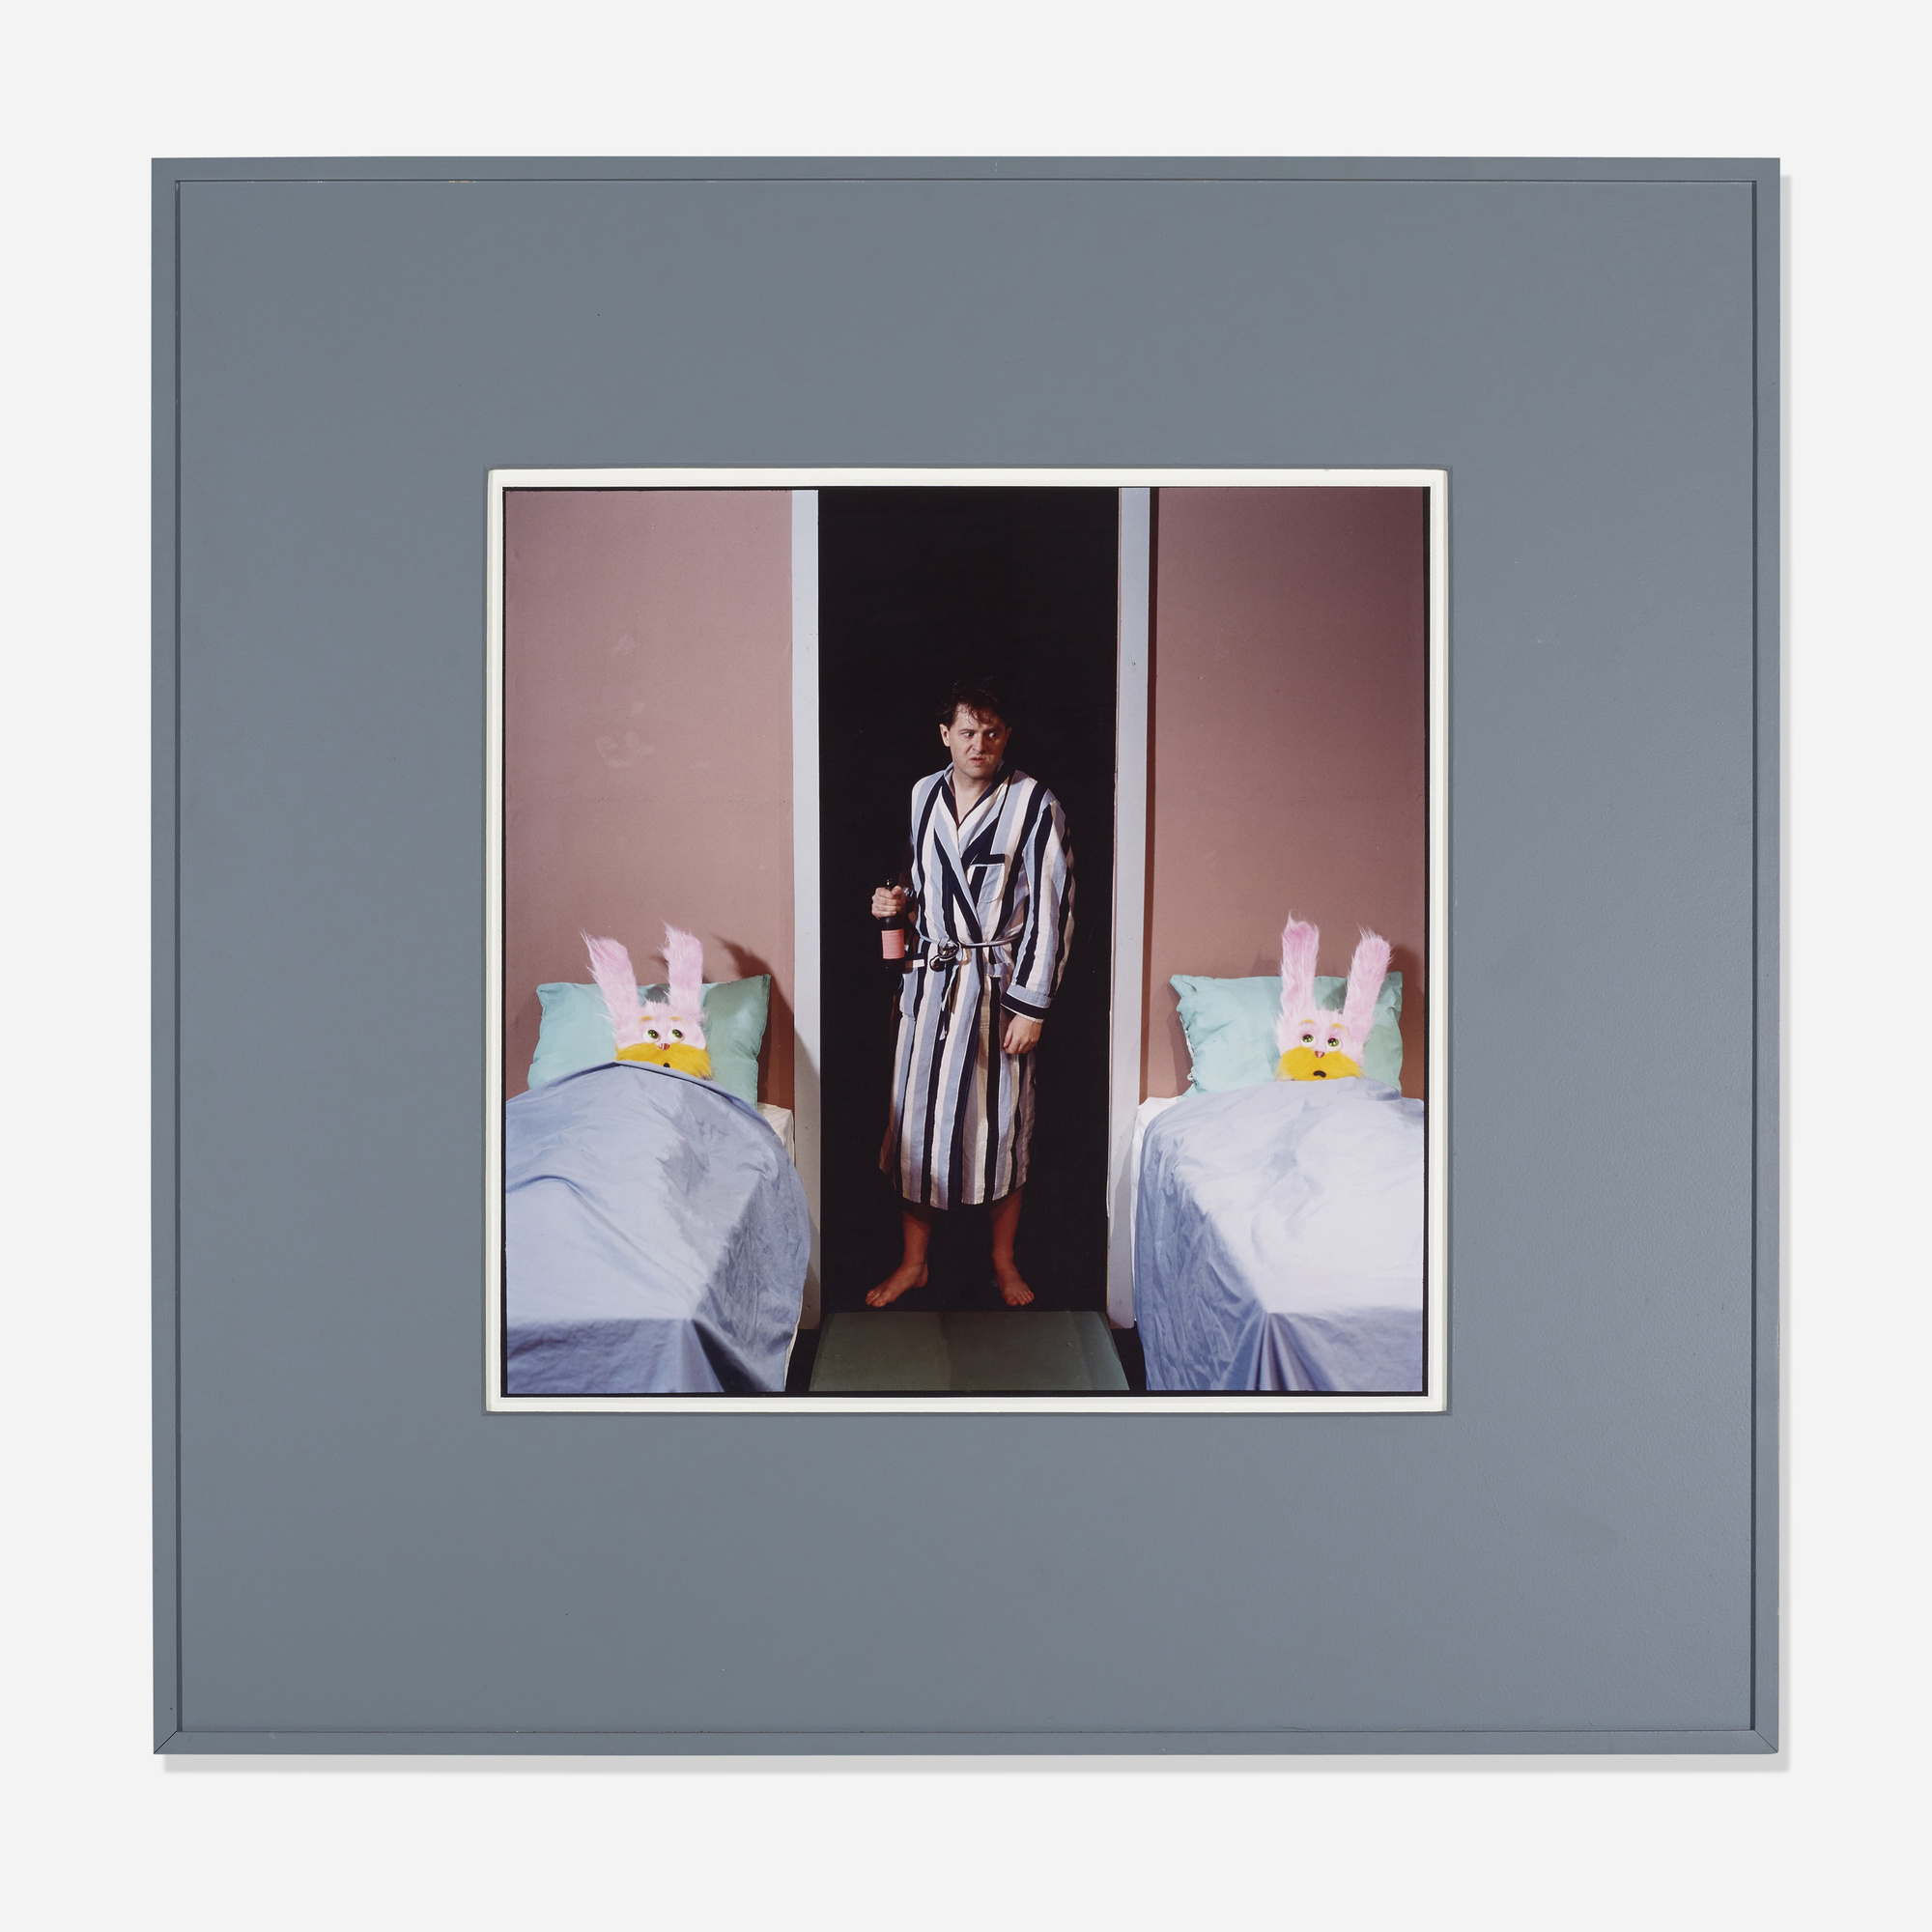 200: Bruce Charlesworth / Untitled (Rabbits in Bed) (1 of 1)